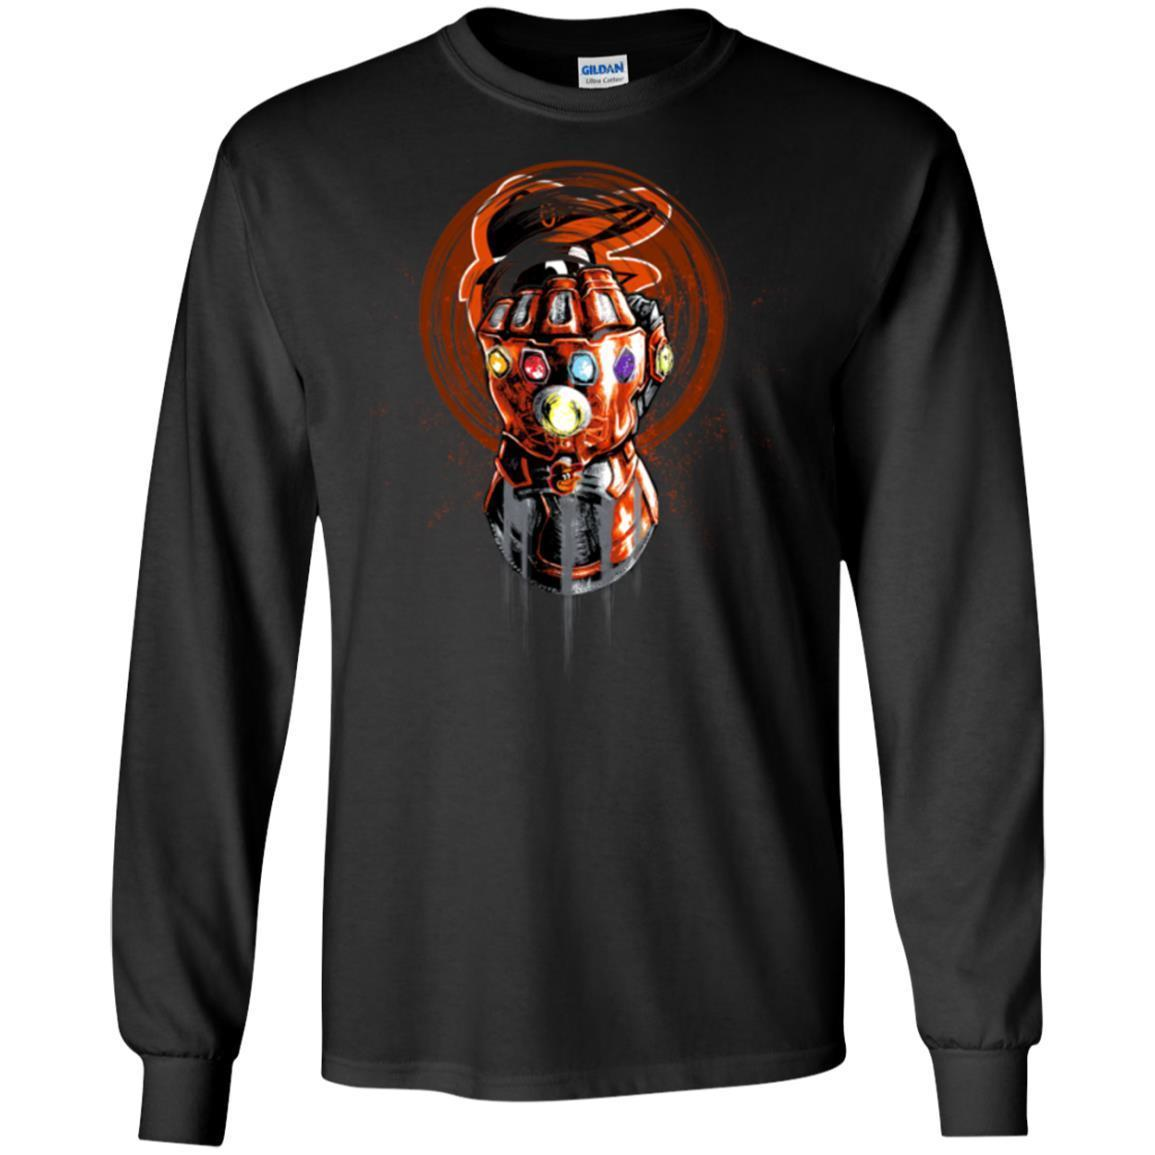 Buy The Infinity Gauntlet Thanos Baltimore Orioles Ts Shirts